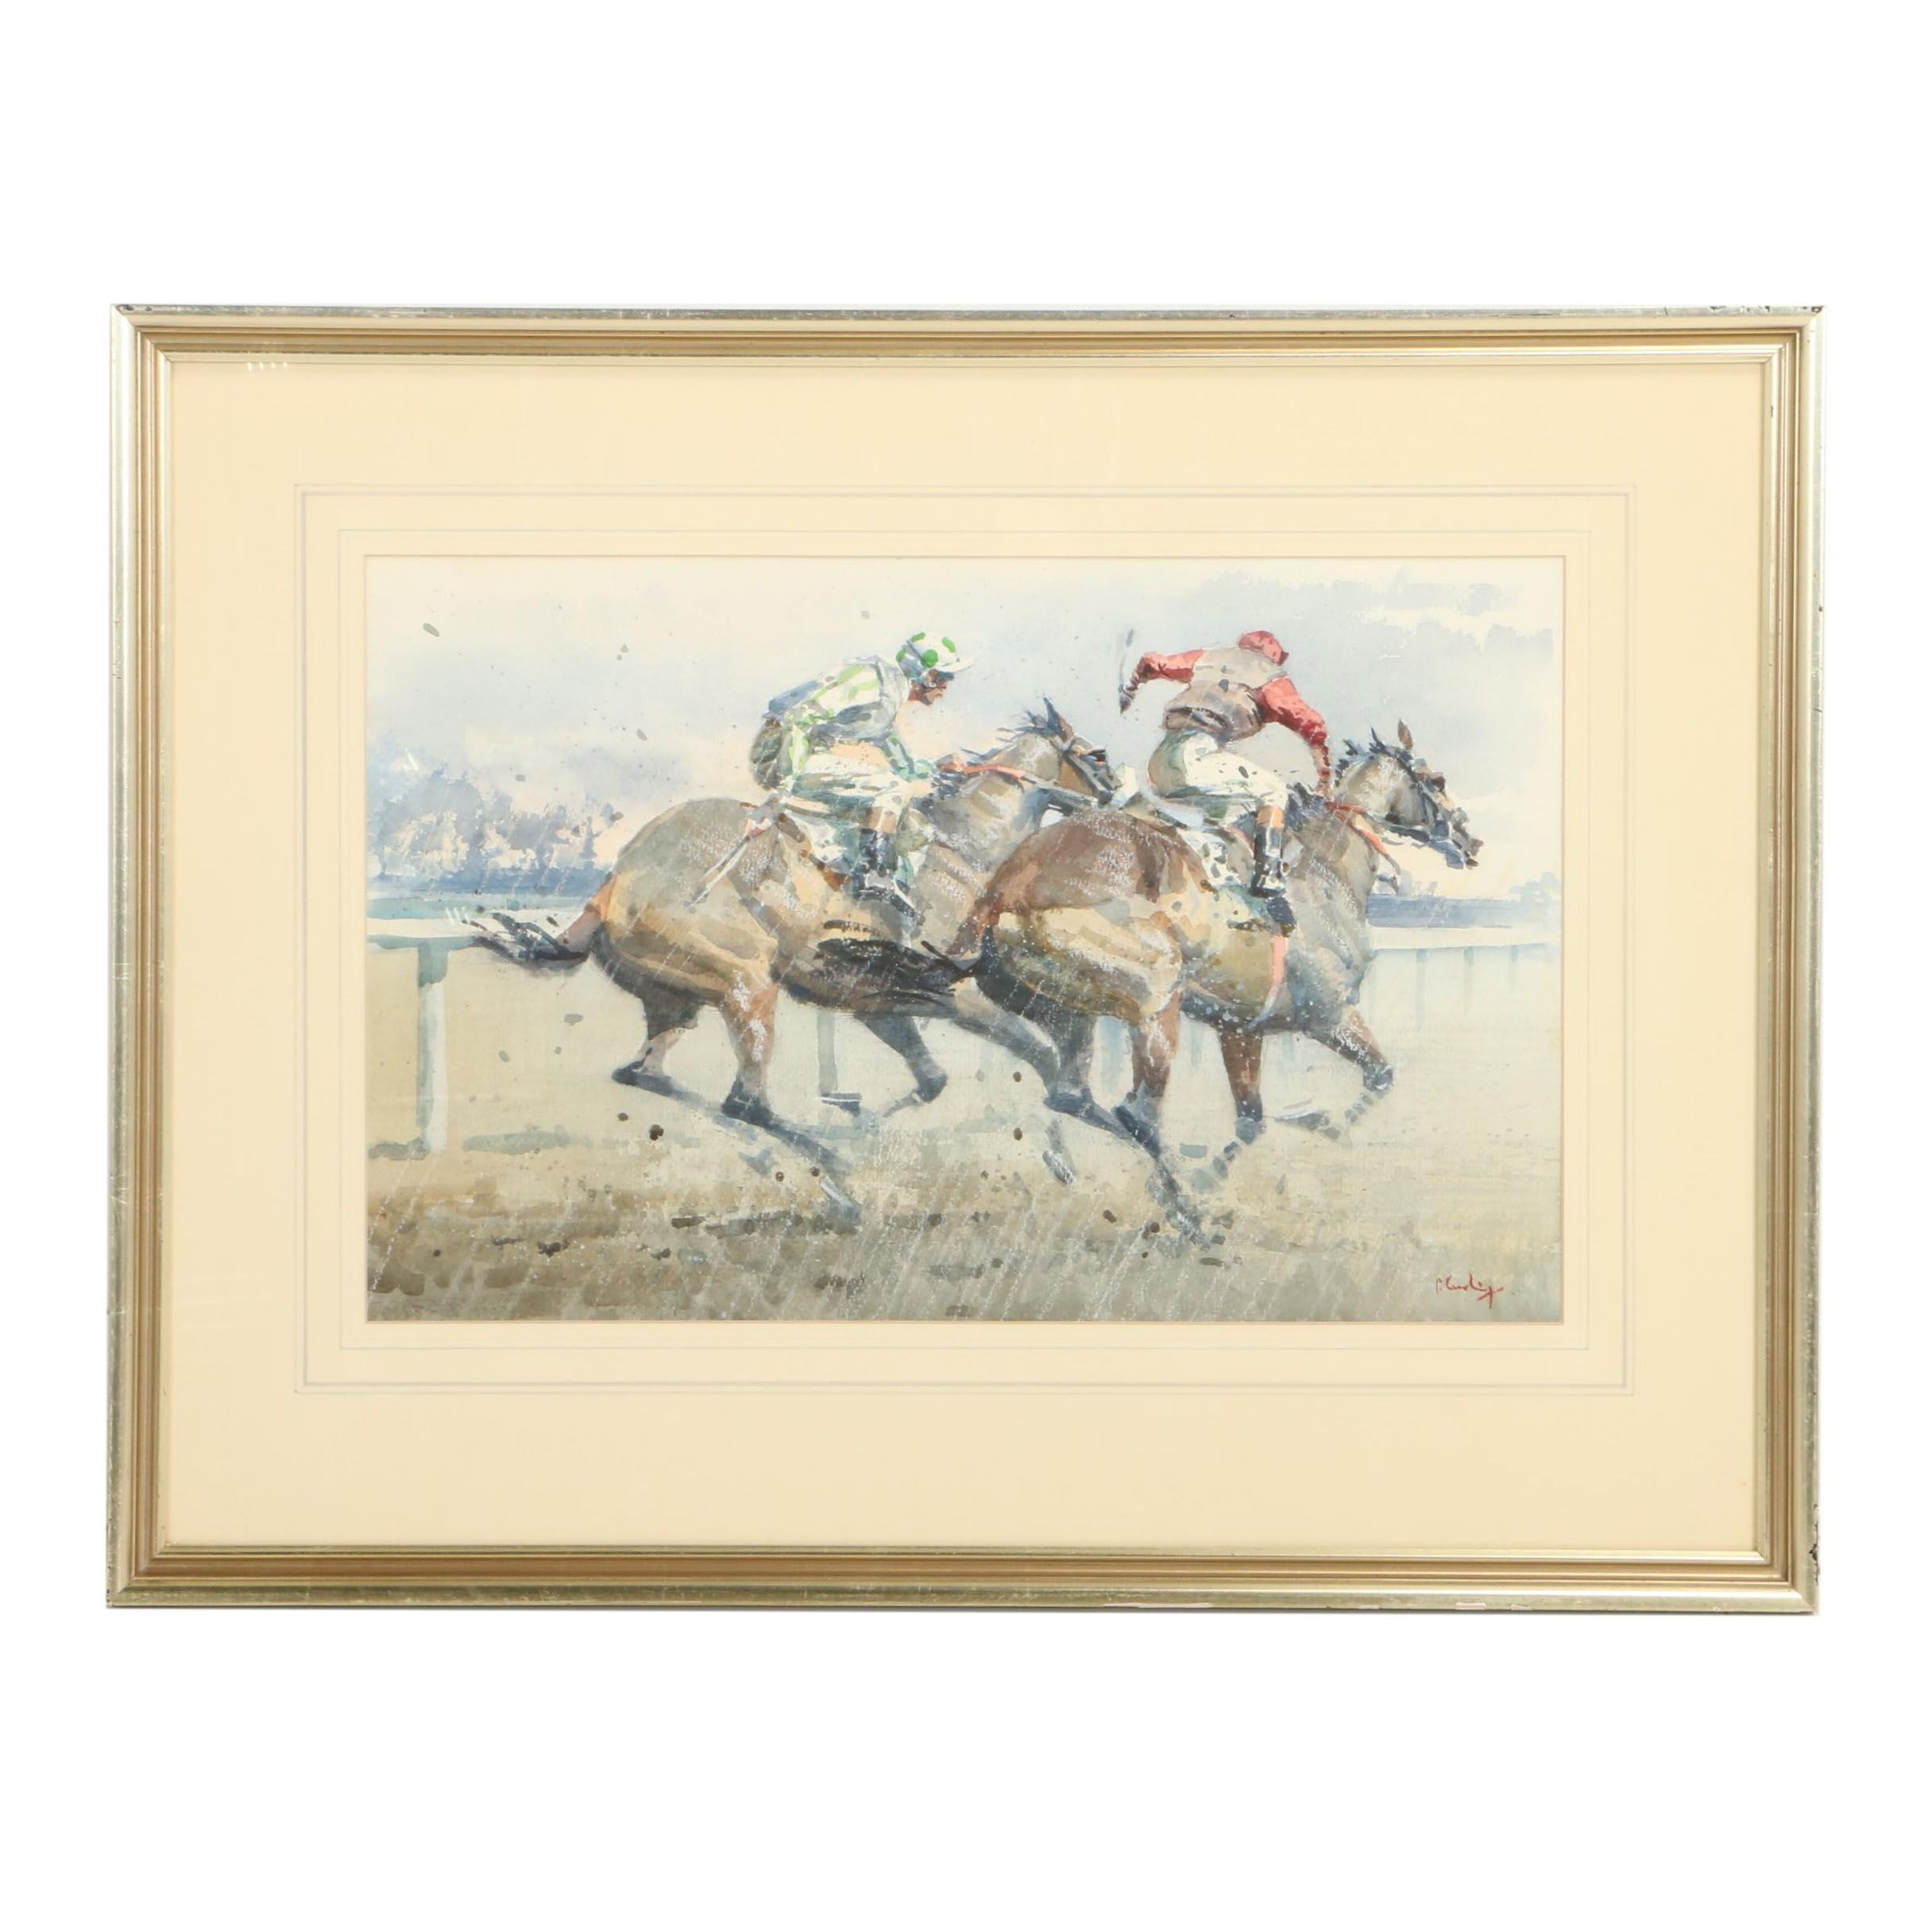 Peter Curling Watercolor Painting of a Horse Race